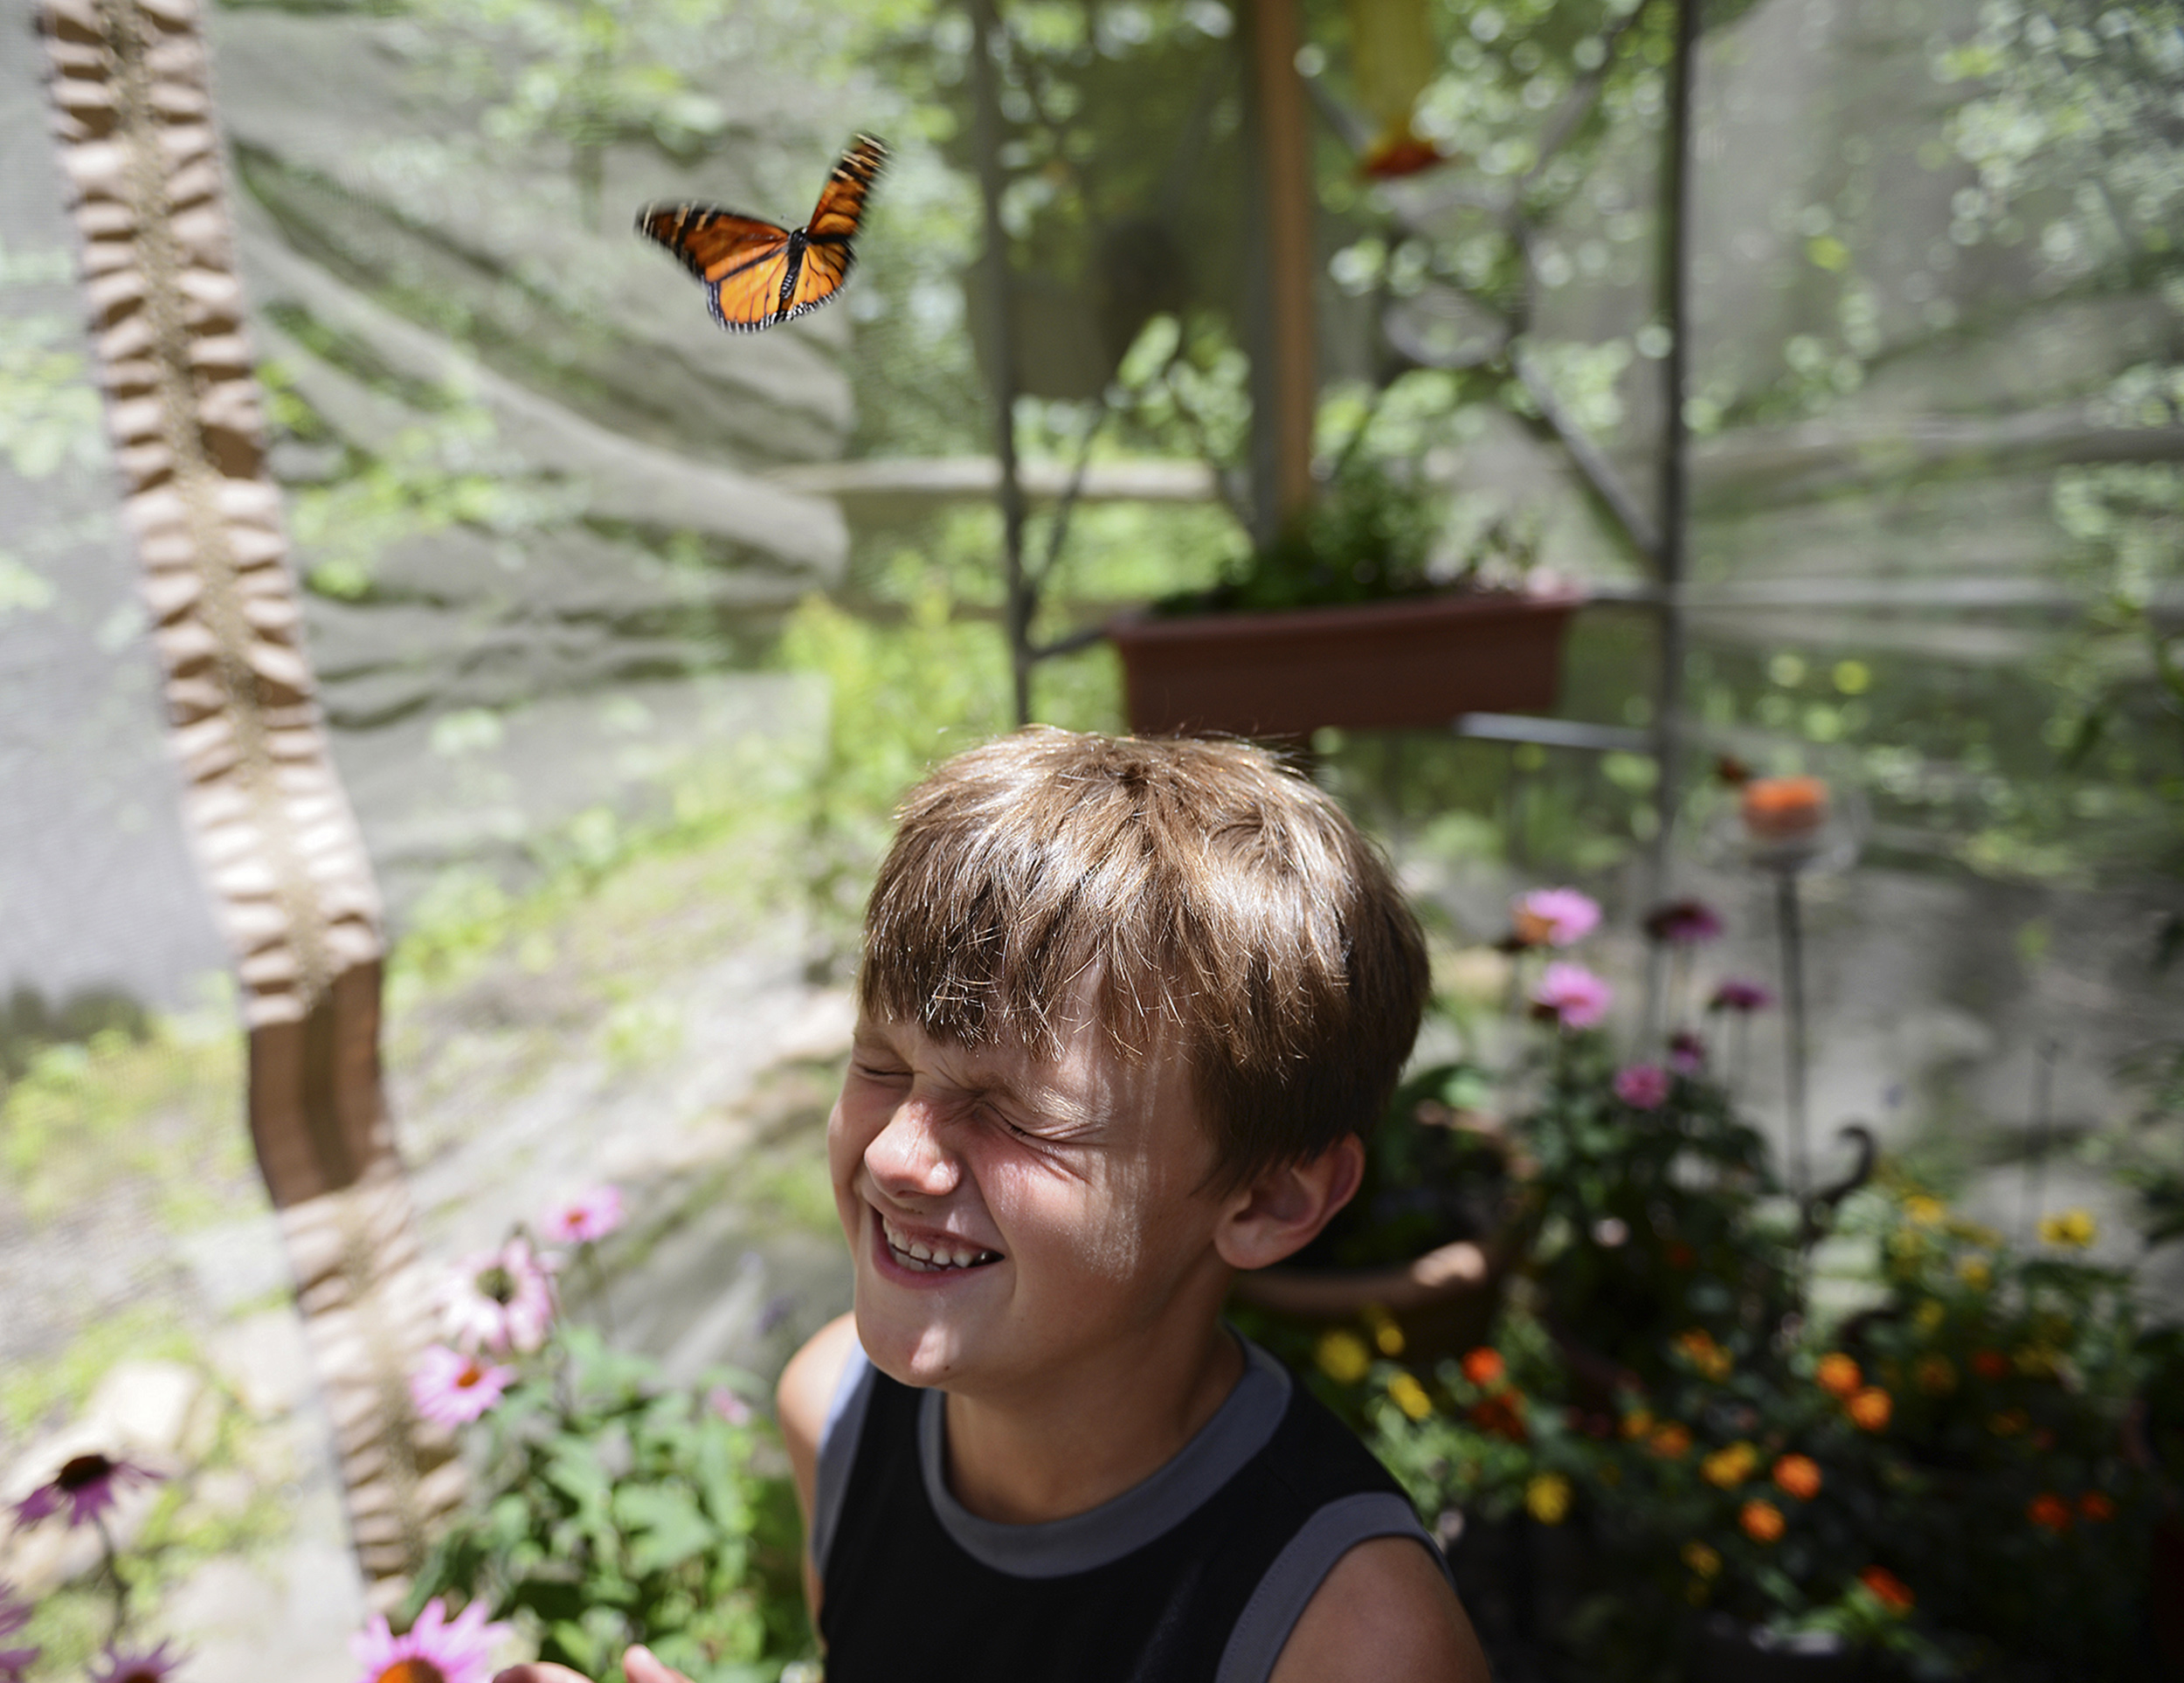 Jayden Jones, 7, of Westerville, laughs as a monarch takes flight from his nose in a butterfly tent outside of the Blendon Woods Metro Park nature center, in Westerville, Ohio, Saturday, July 5, 2014.